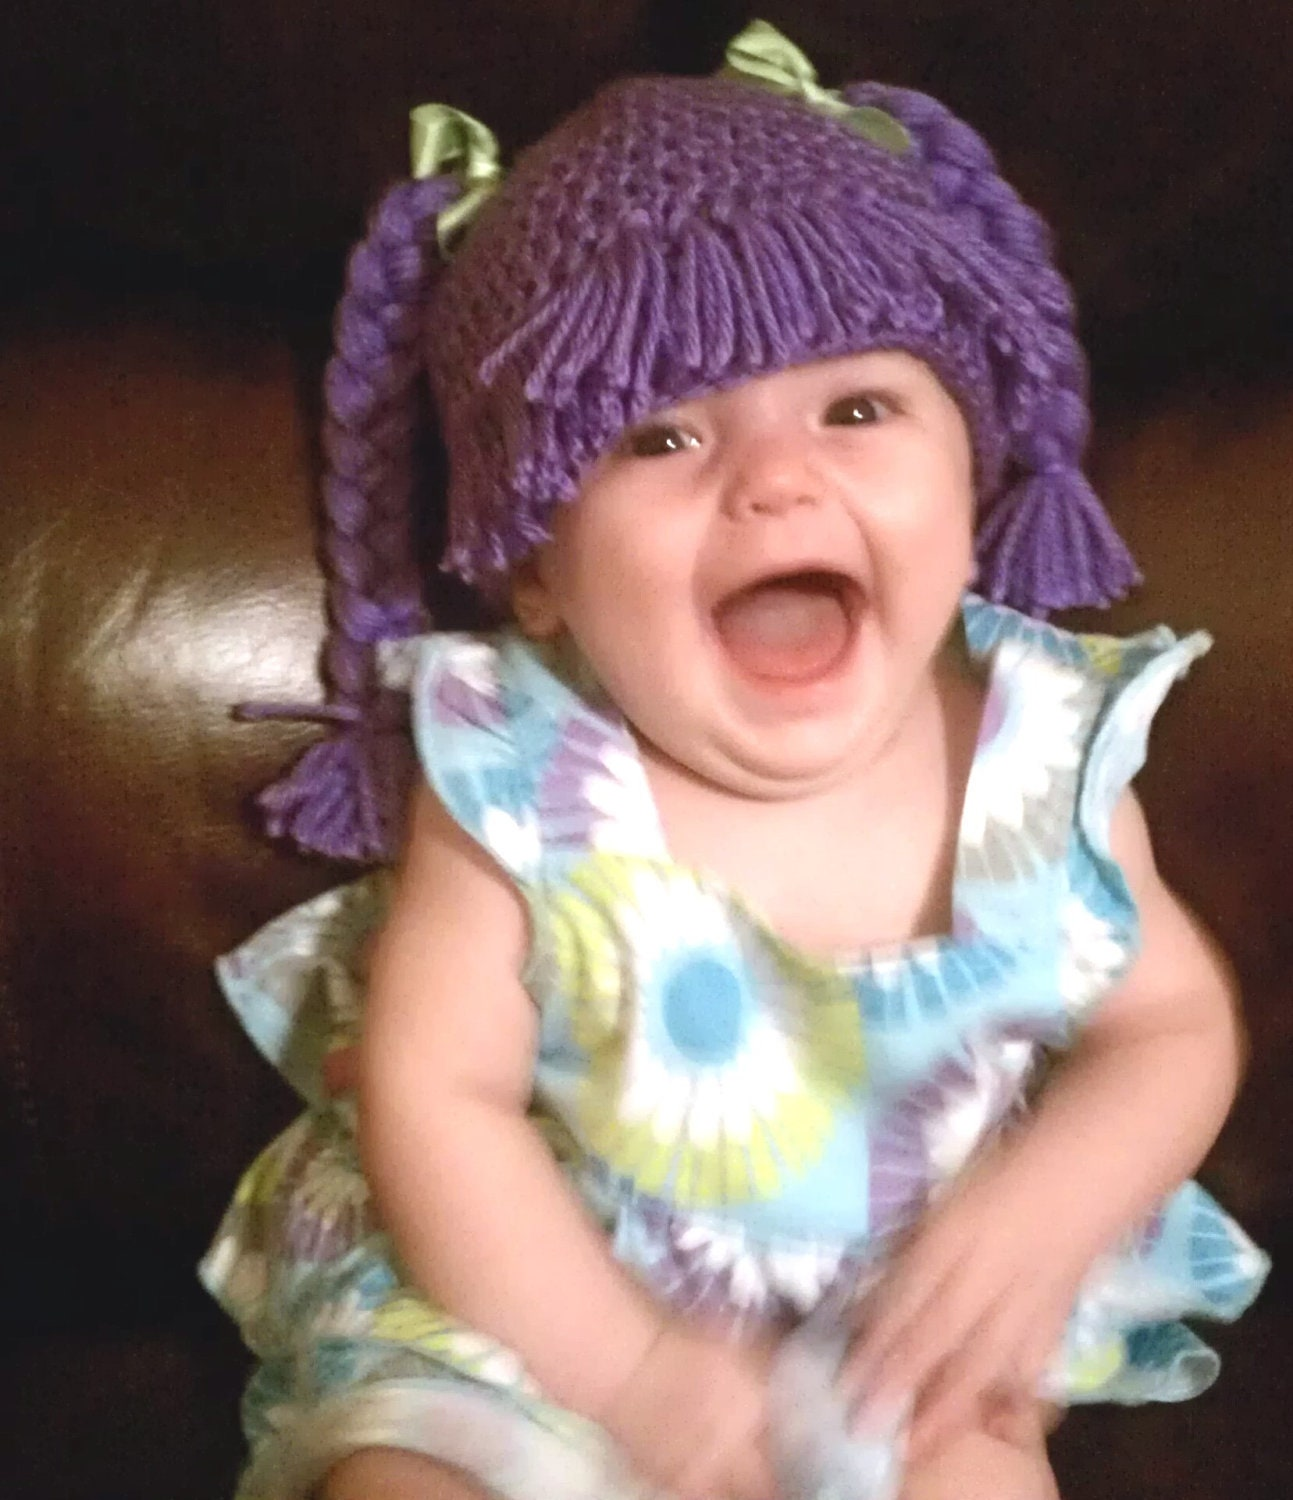 Baby Girl Adorable Cabbage Patch Crocheted Hat Complete With